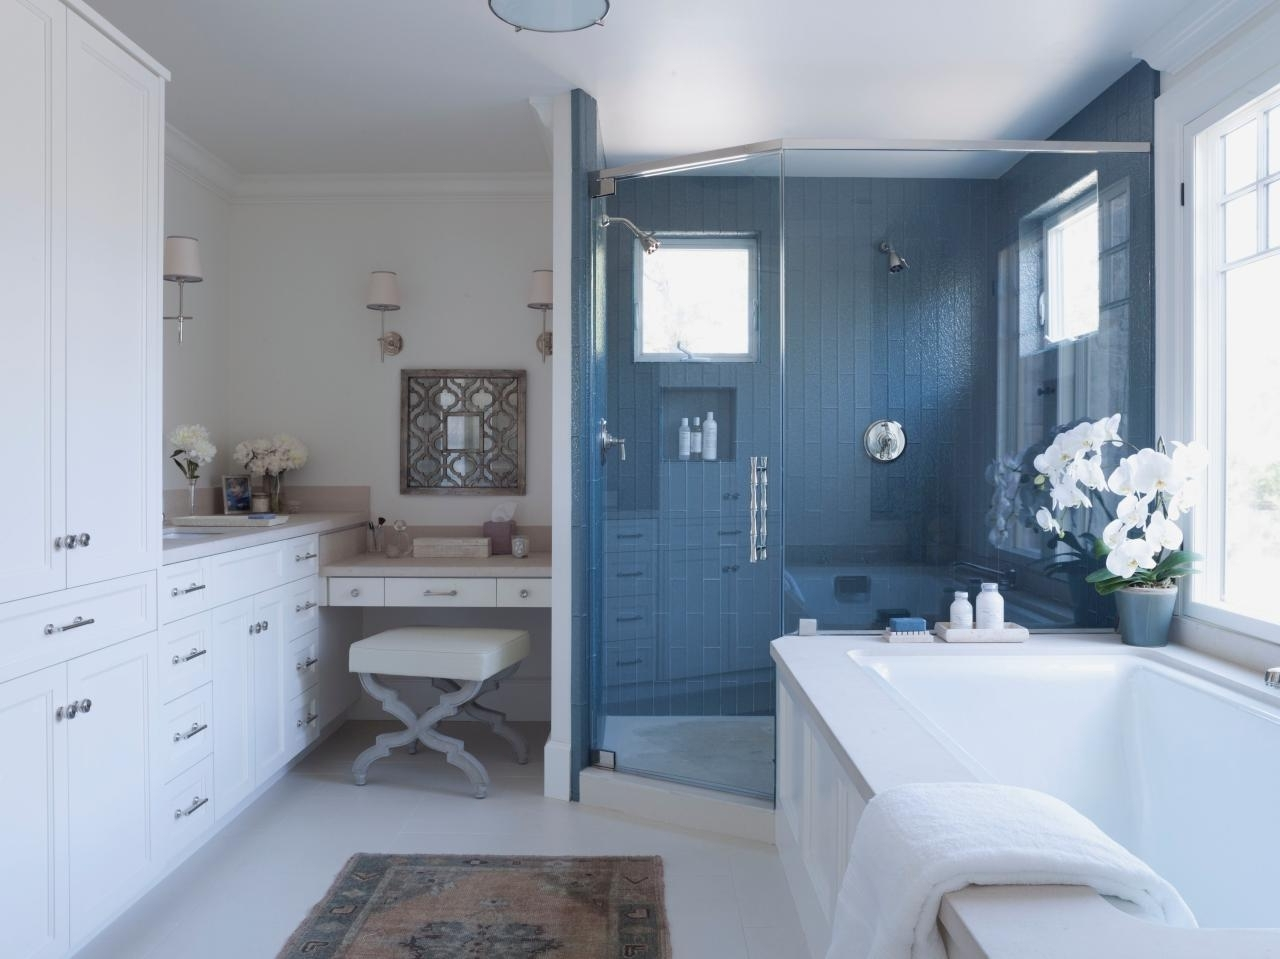 Bathroom Remodeling How To & Diy | Diy Intended For Cheap Ways To Improve Your Bathroom (View 8 of 33)